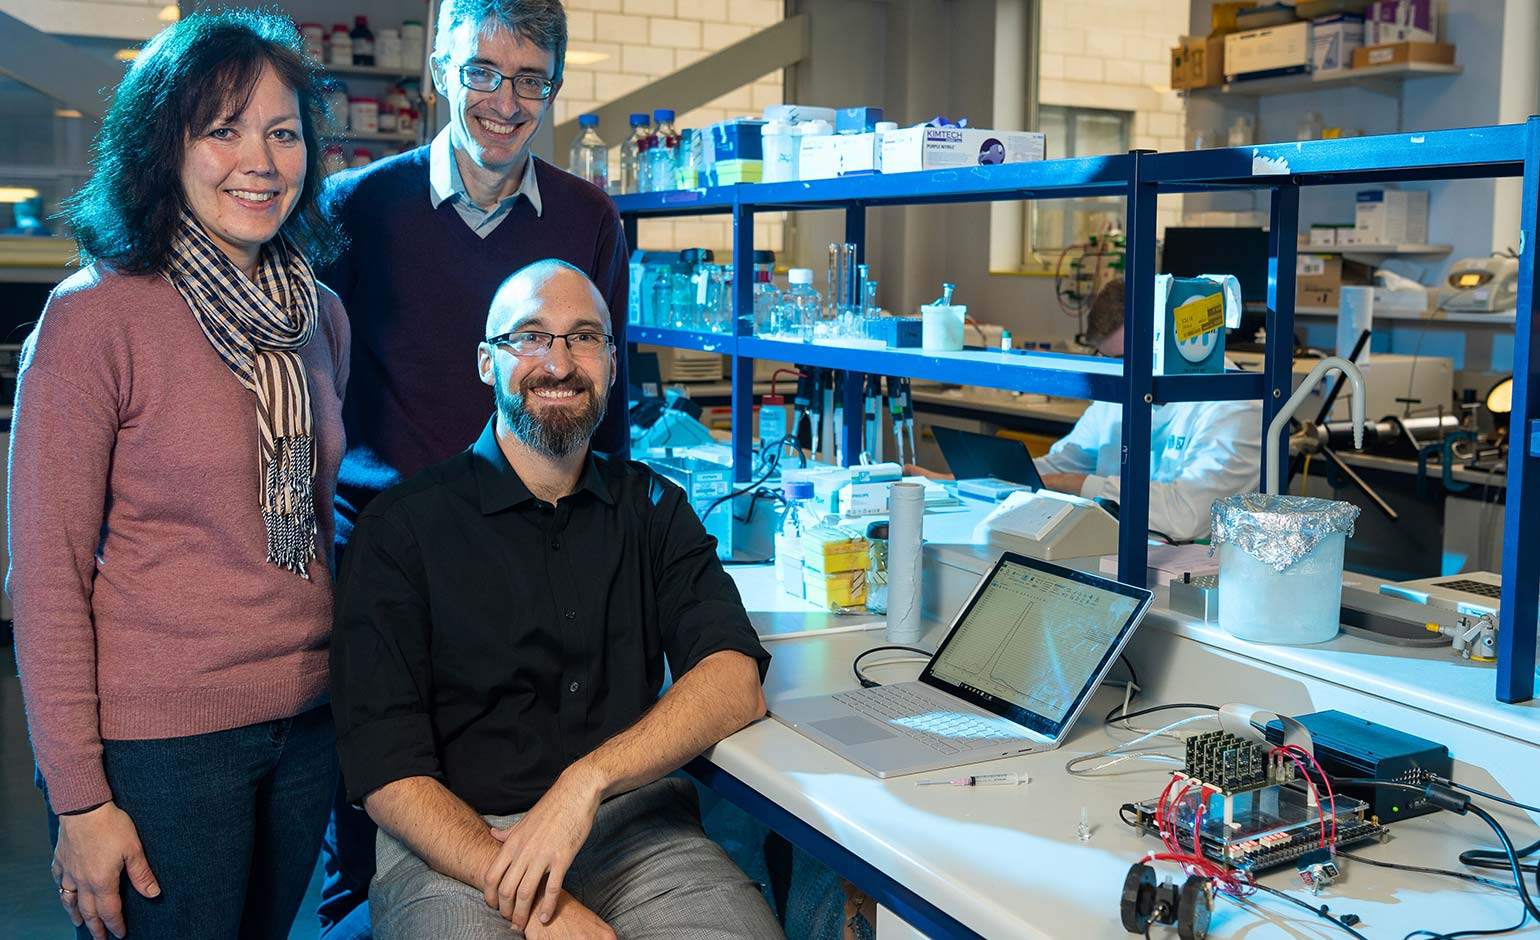 Bath scientists invent world's first on-the-spot test for synthetic drug 'spice'